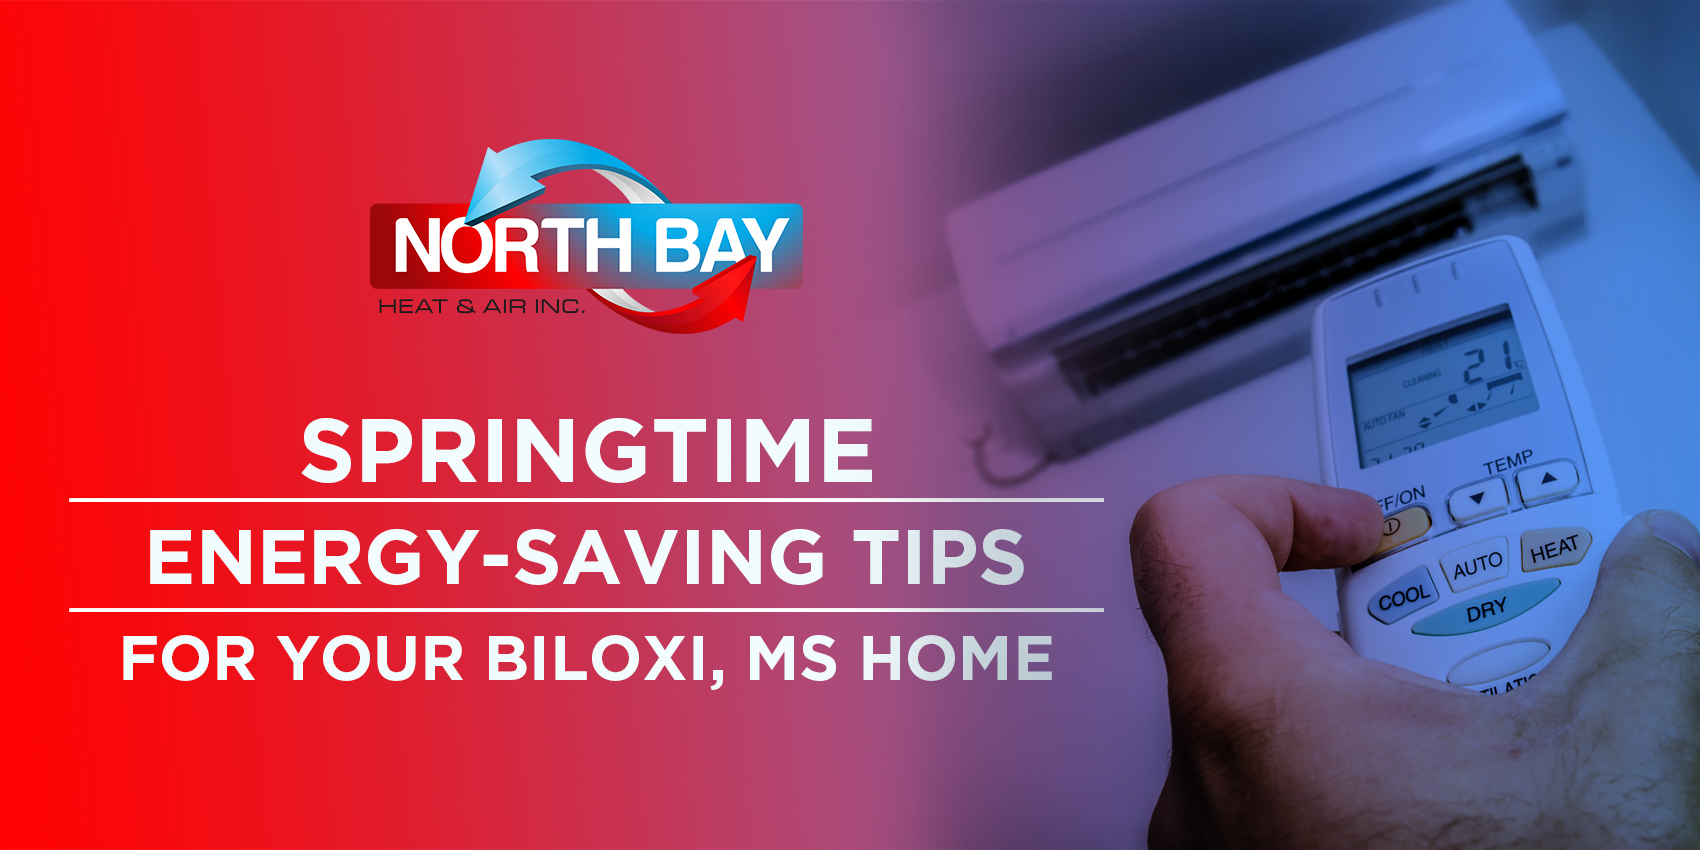 Springtime Energy-Saving Tips for Your Biloxi, MS Home